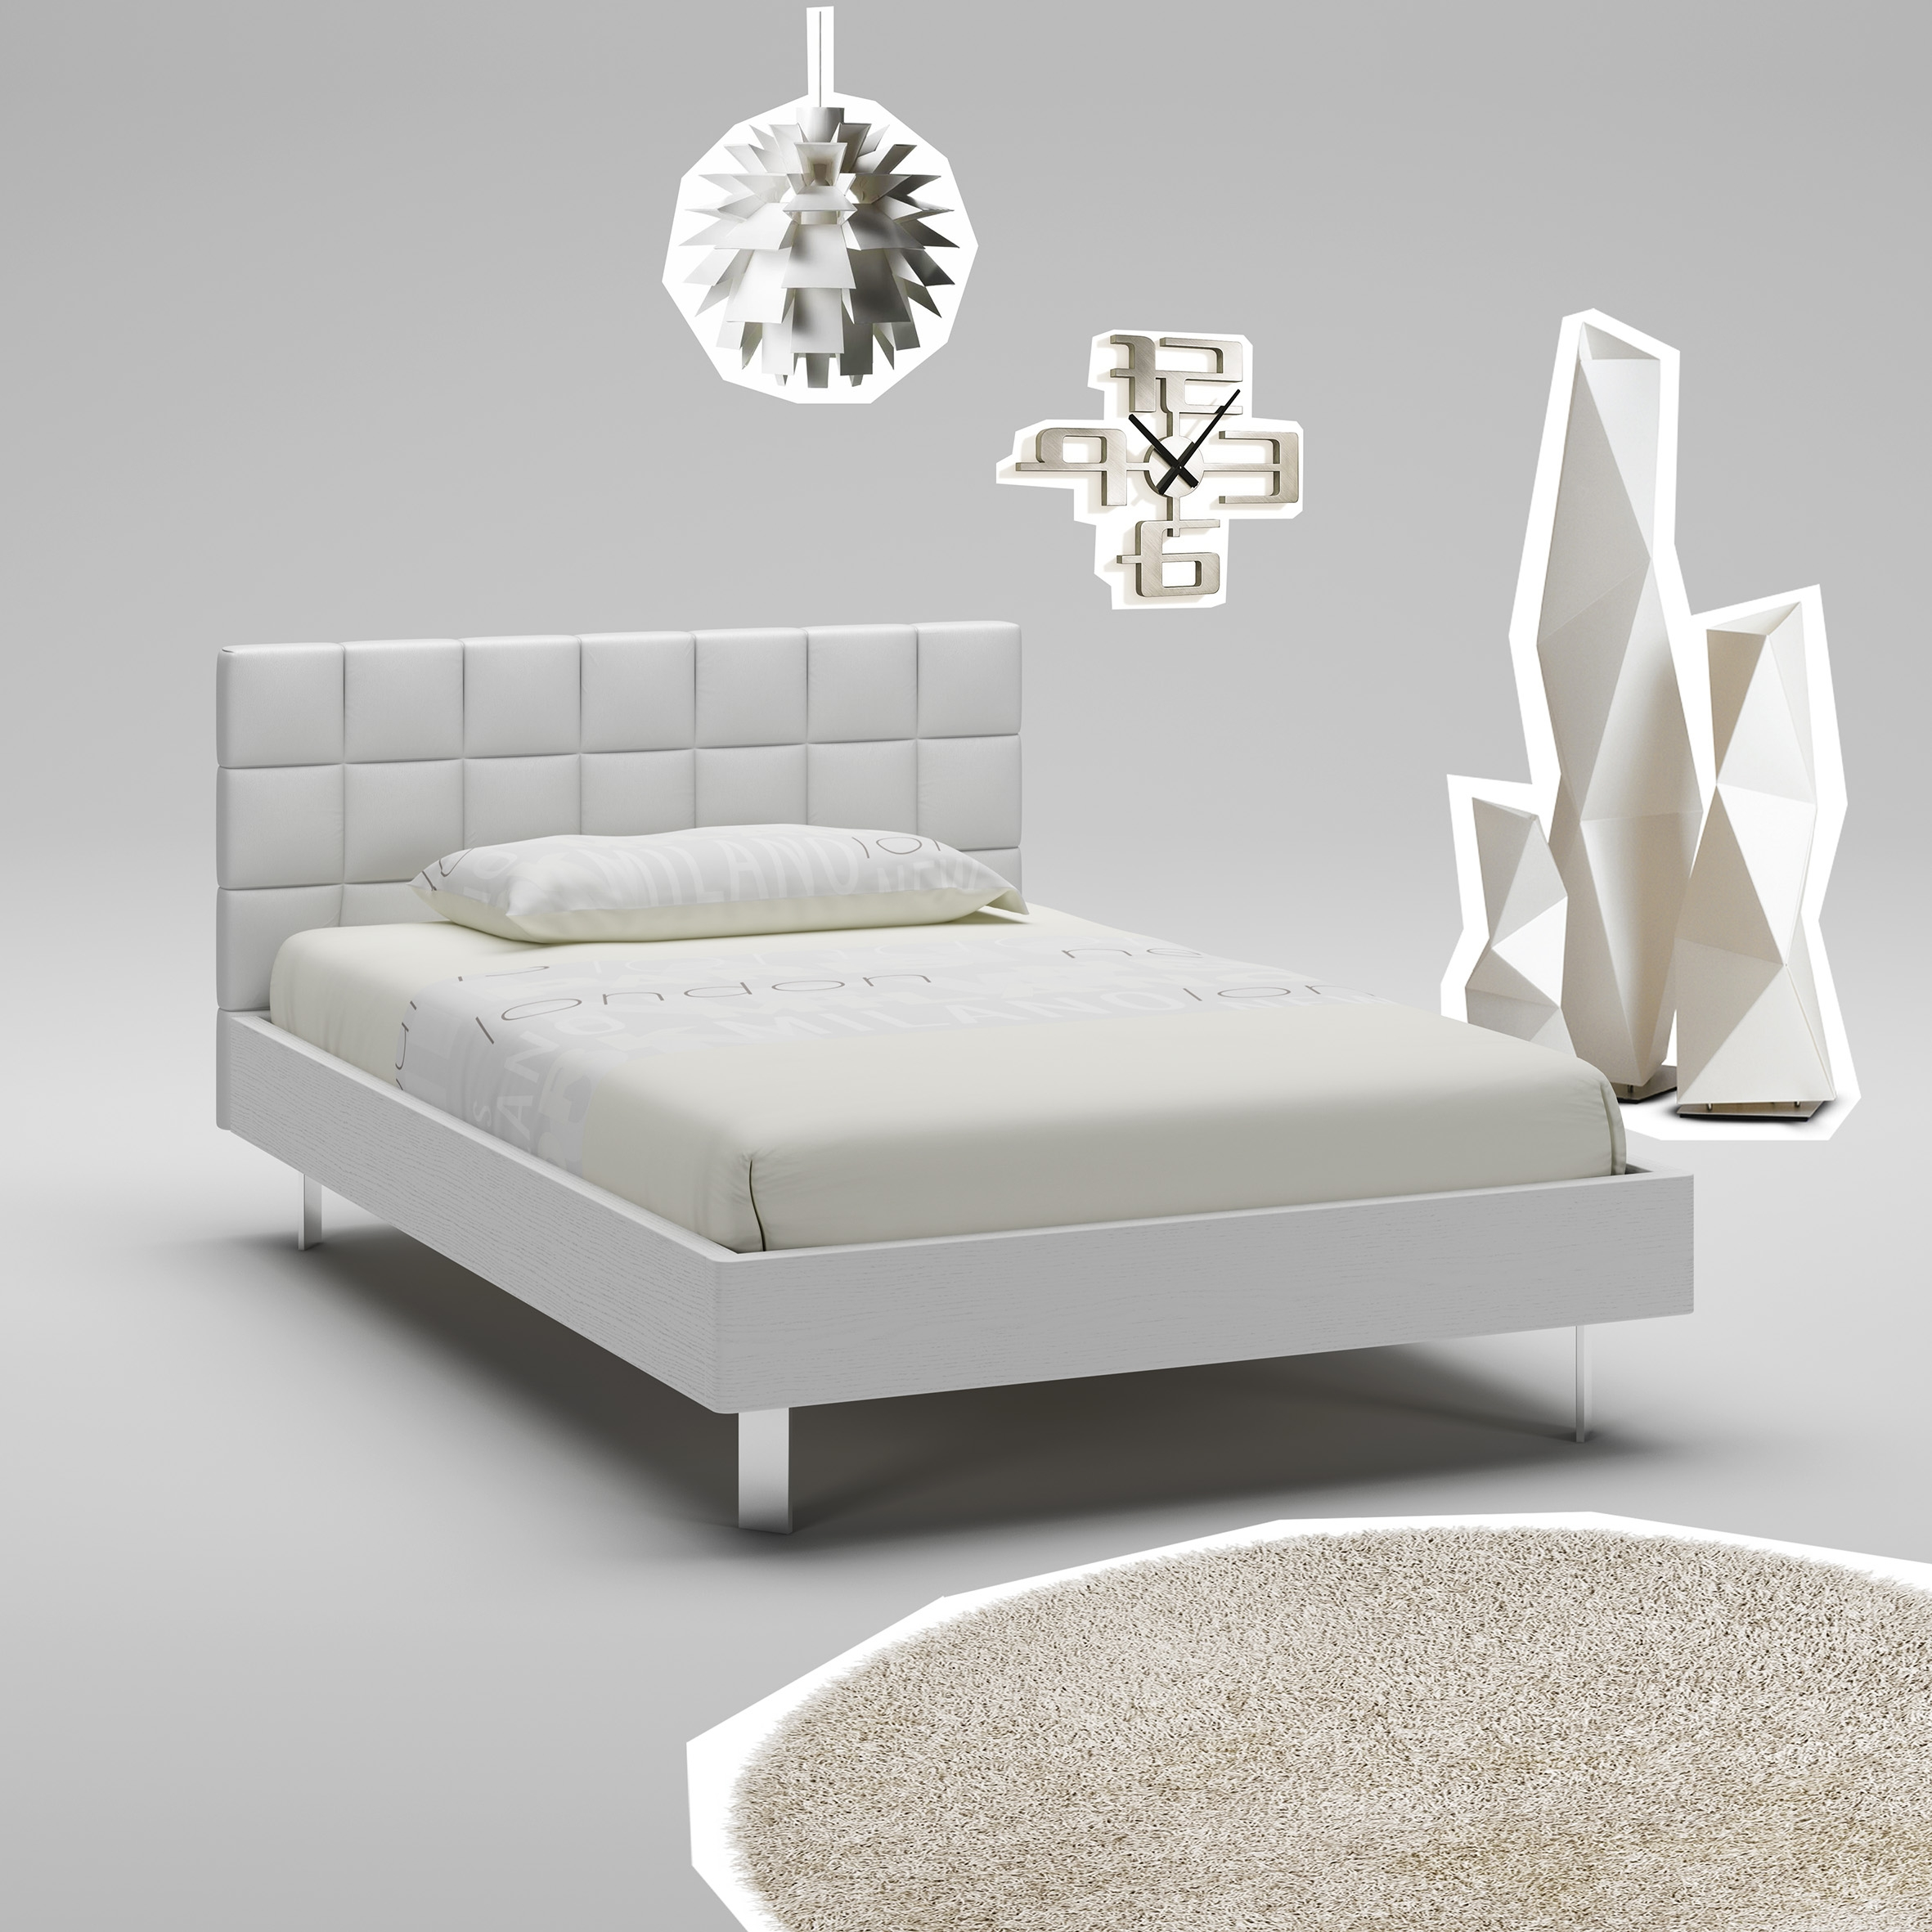 lit ado blanc avec t te de lit rembourr e moretti. Black Bedroom Furniture Sets. Home Design Ideas